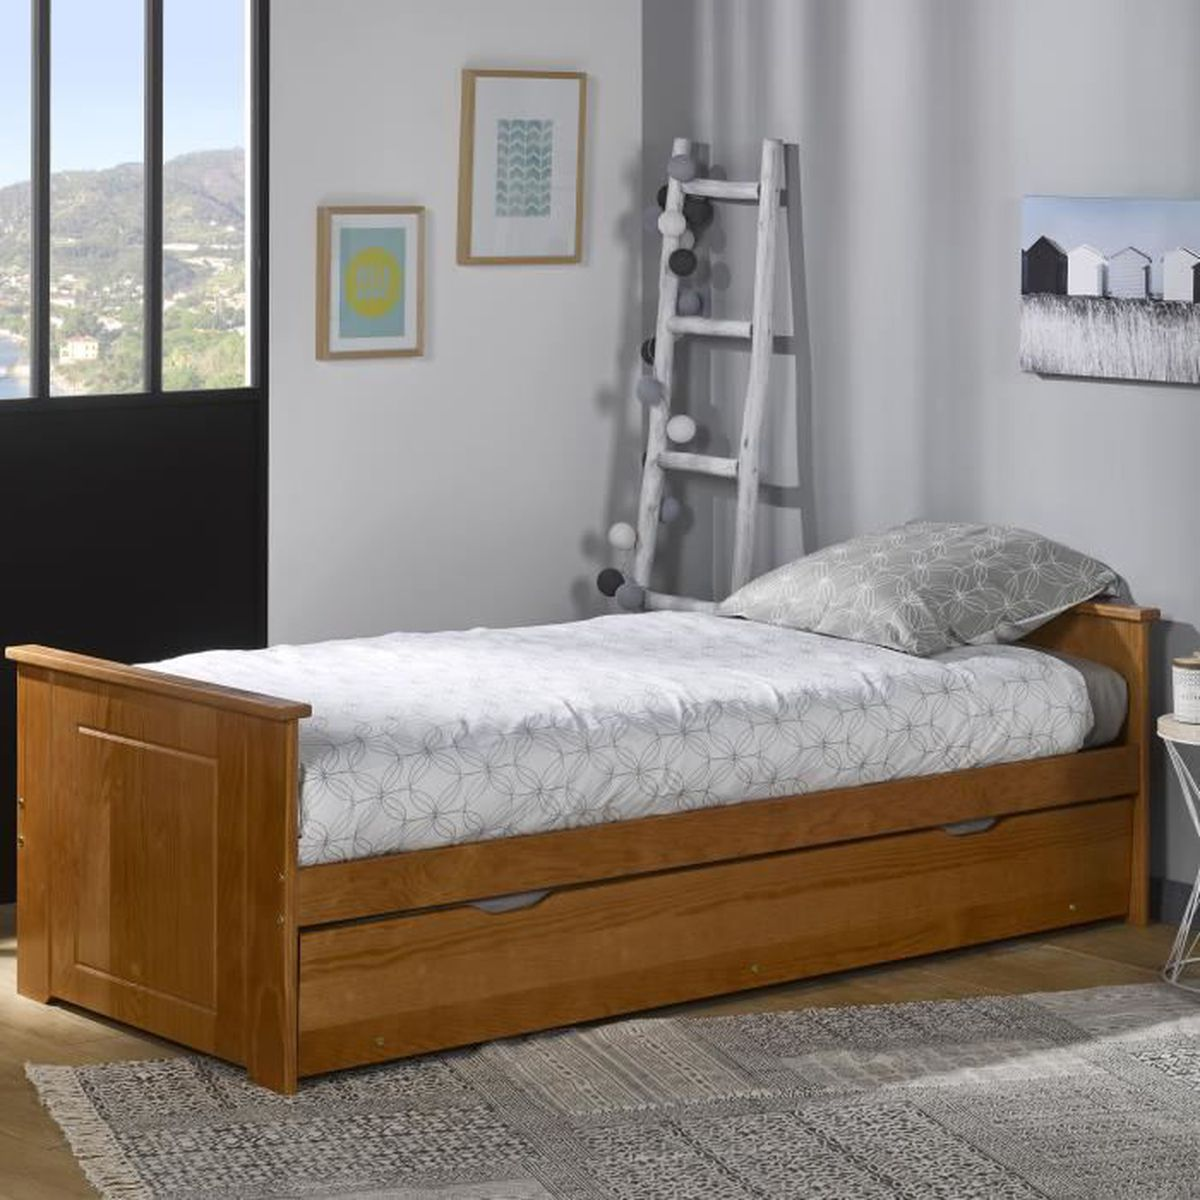 cheap lit gigogne matelas x bois miel with lit gigogne chez but. Black Bedroom Furniture Sets. Home Design Ideas